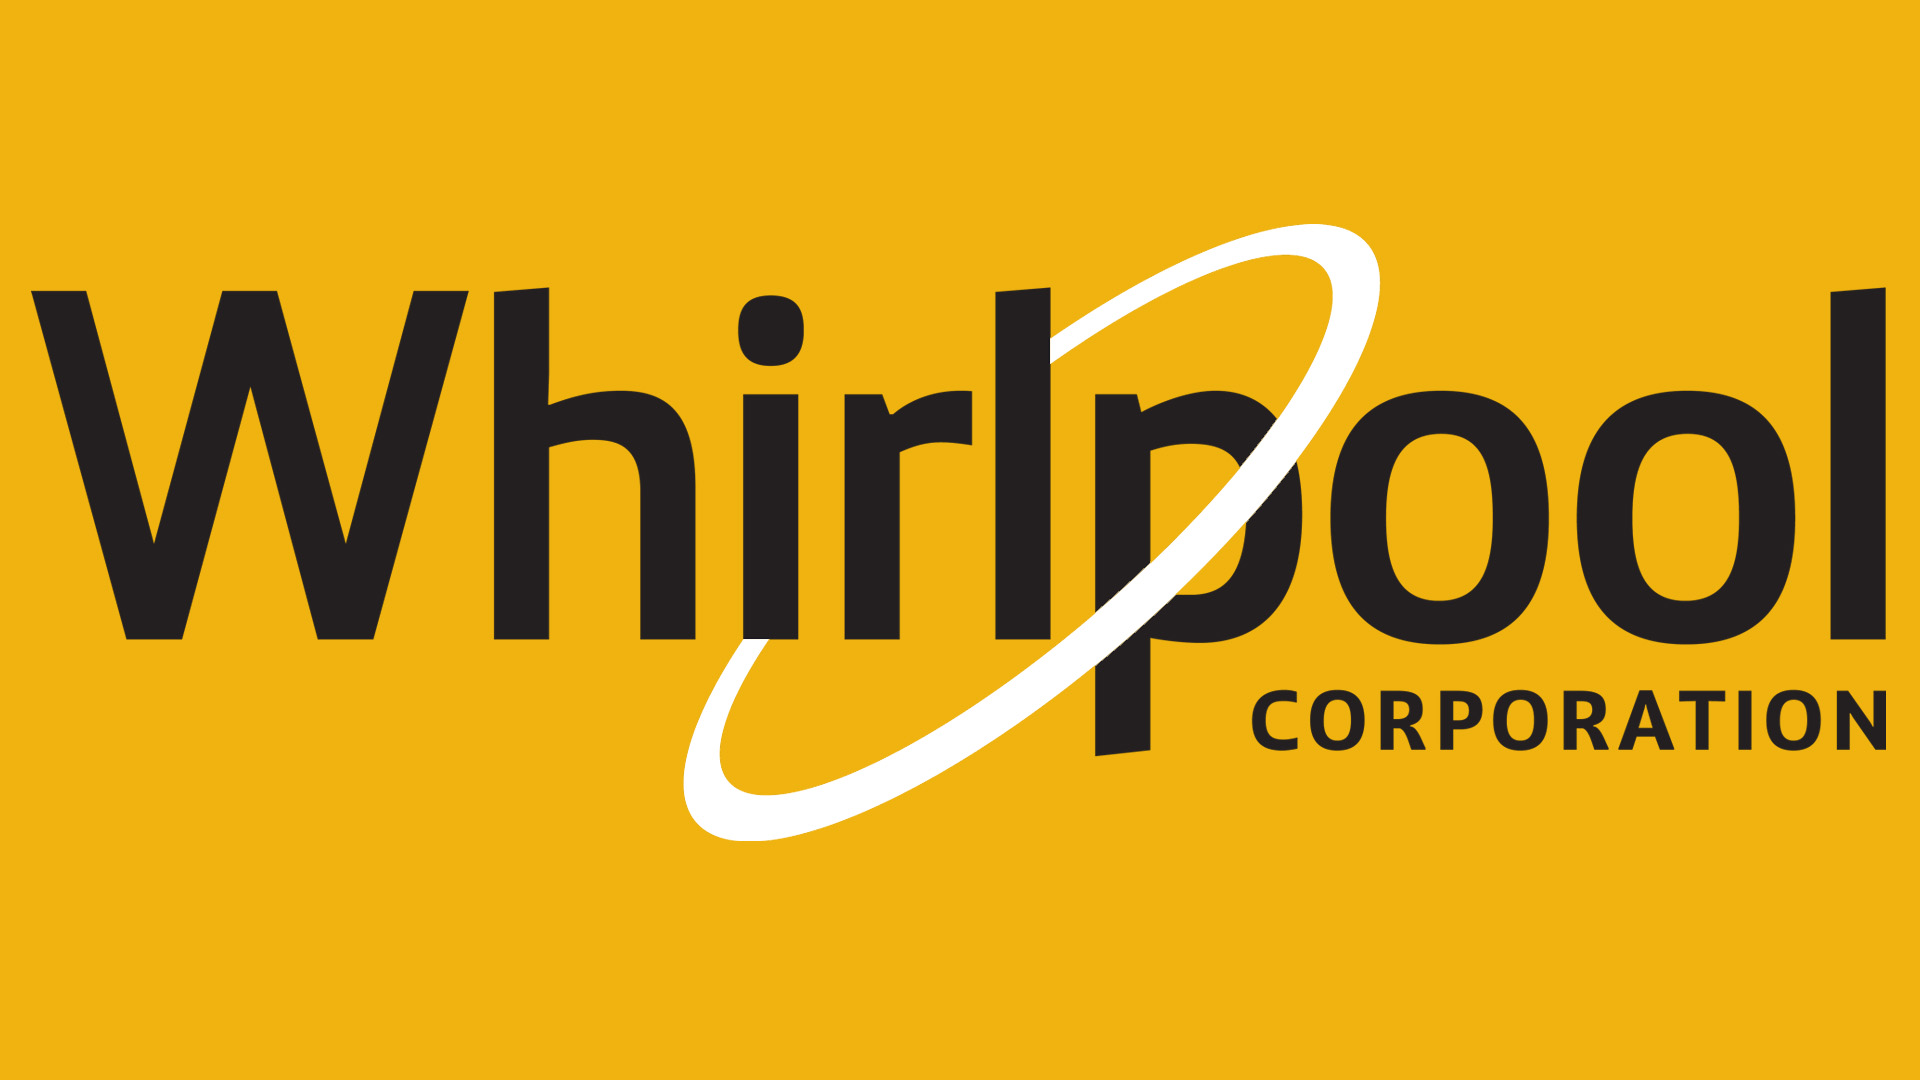 Whirlpool Logo, Whirlpool Symbol, Meaning, History and Evolution